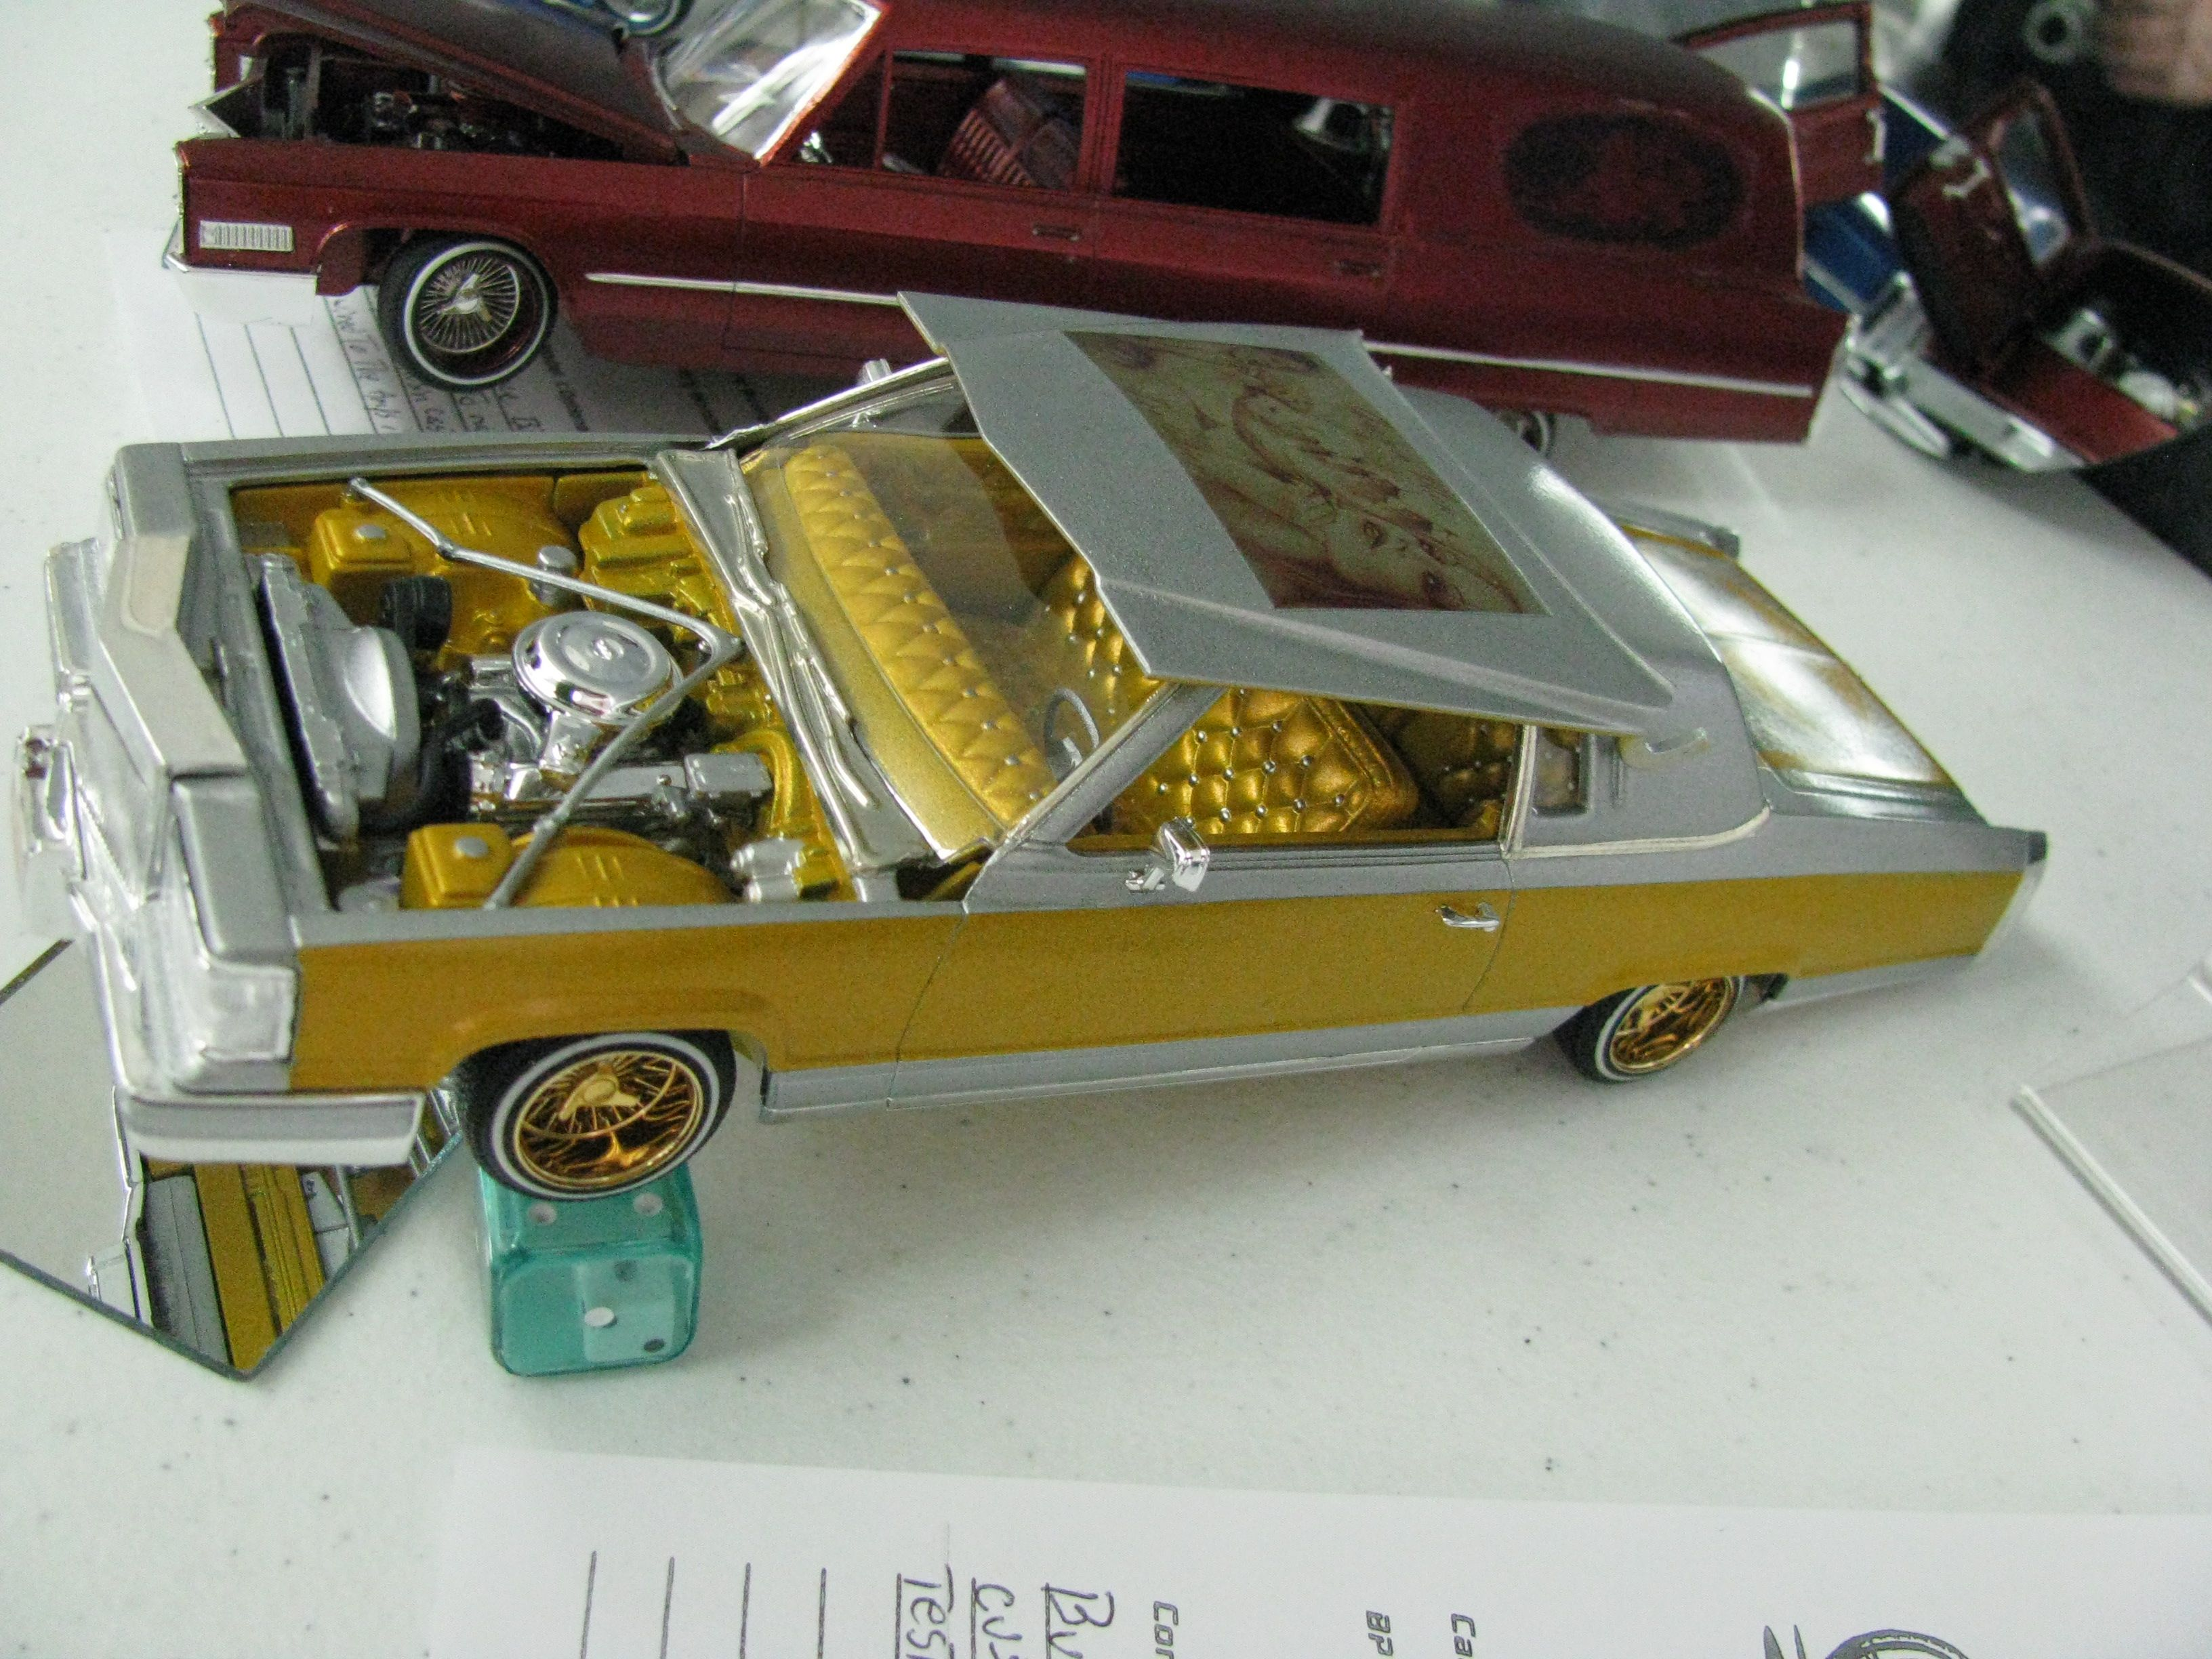 2012 Cedarville Model Car Contest Cadillac Low Rider Plastic